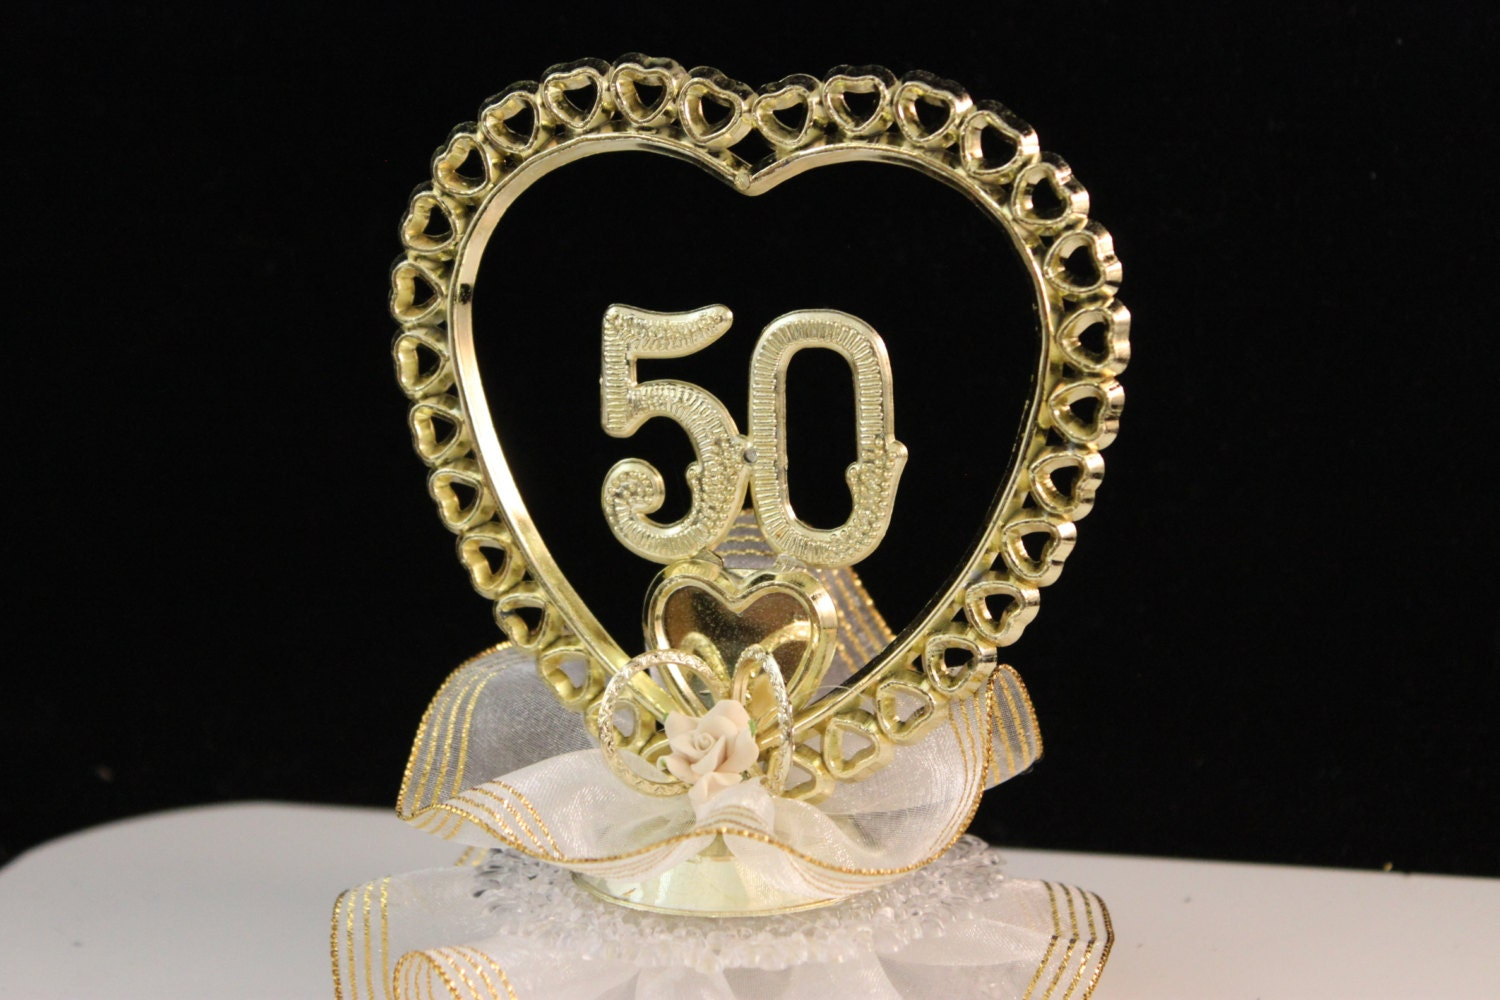 50th wedding anniversary cake topper golden anniversary cake - Th anniversary cake decorations ...